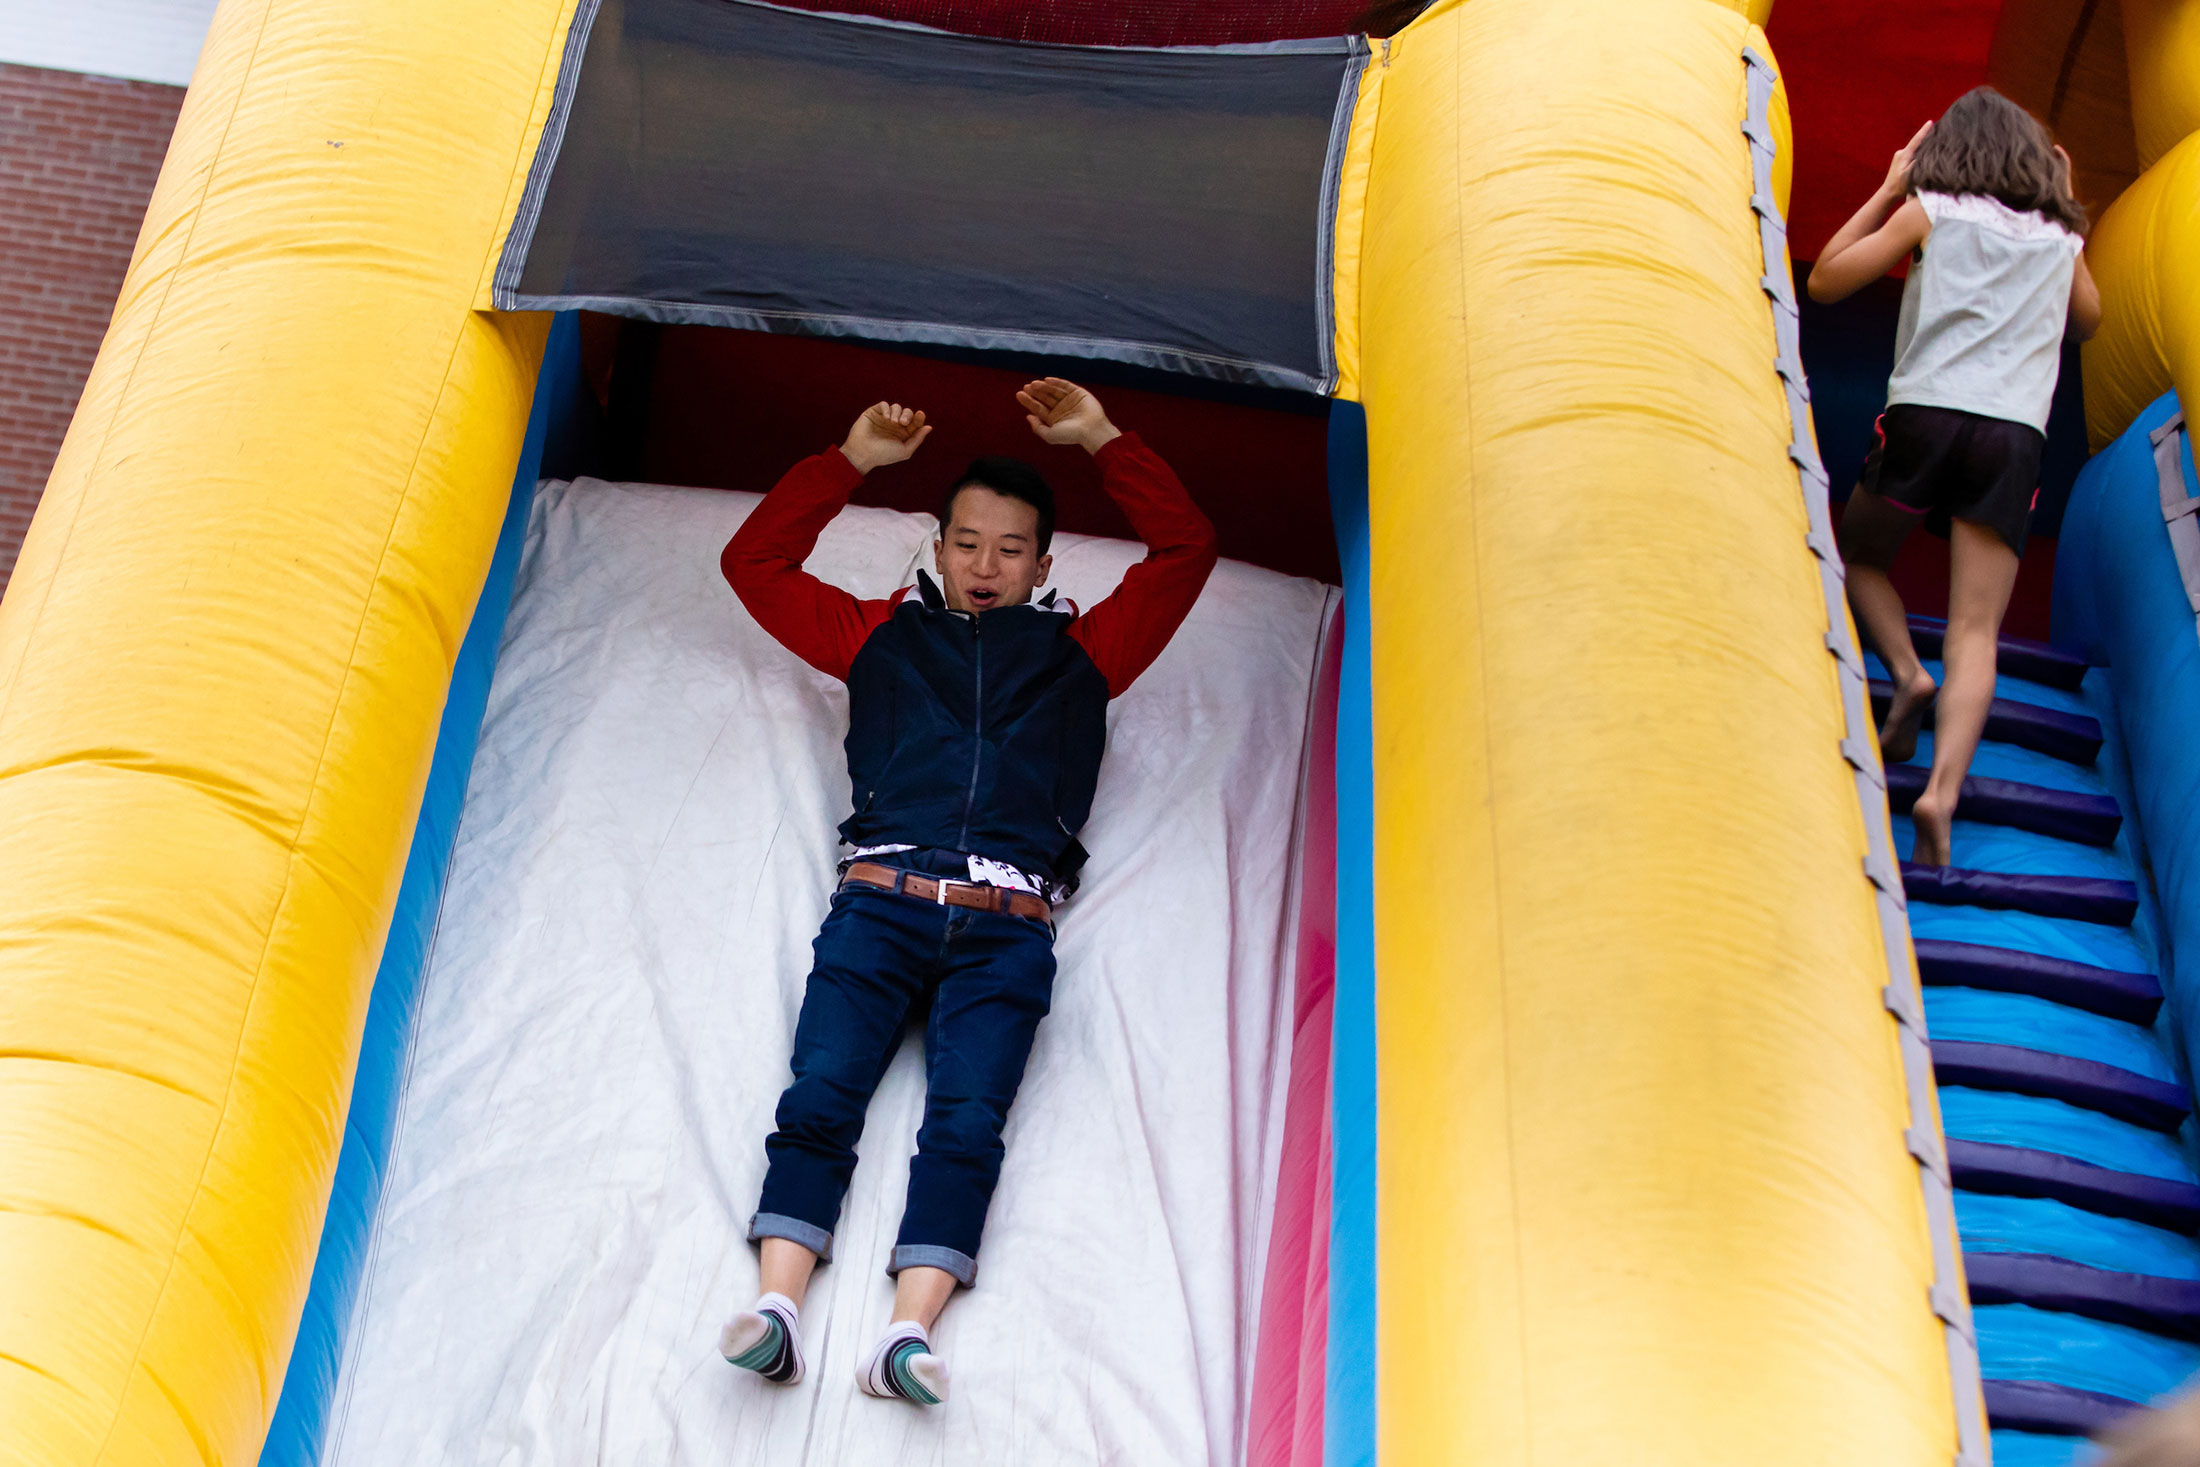 Riding on the bouncy slide